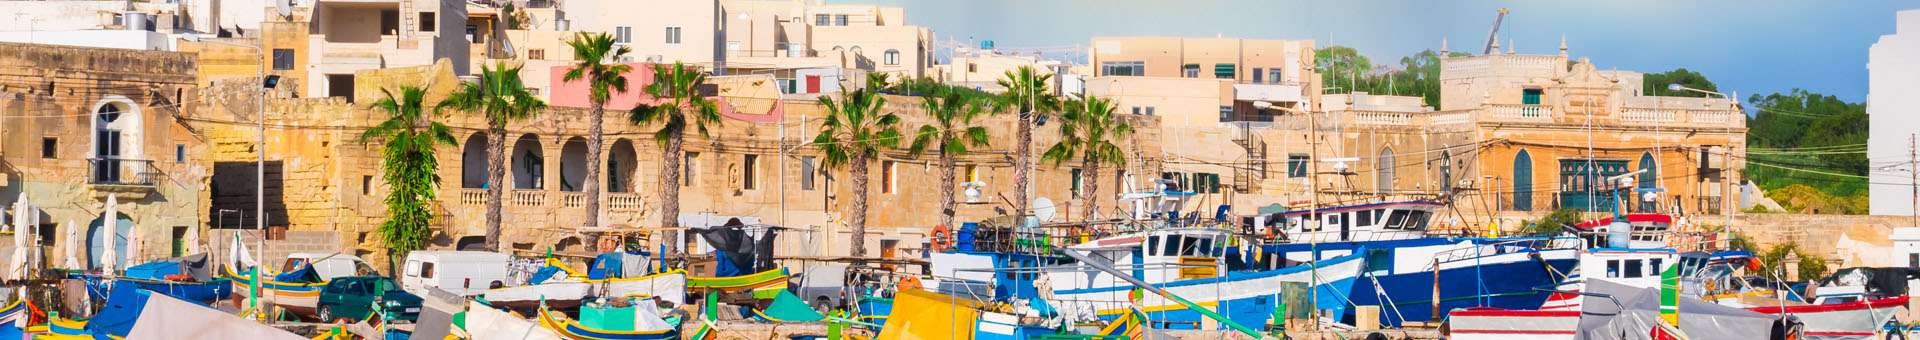 Search Whois information of domain names in Malta